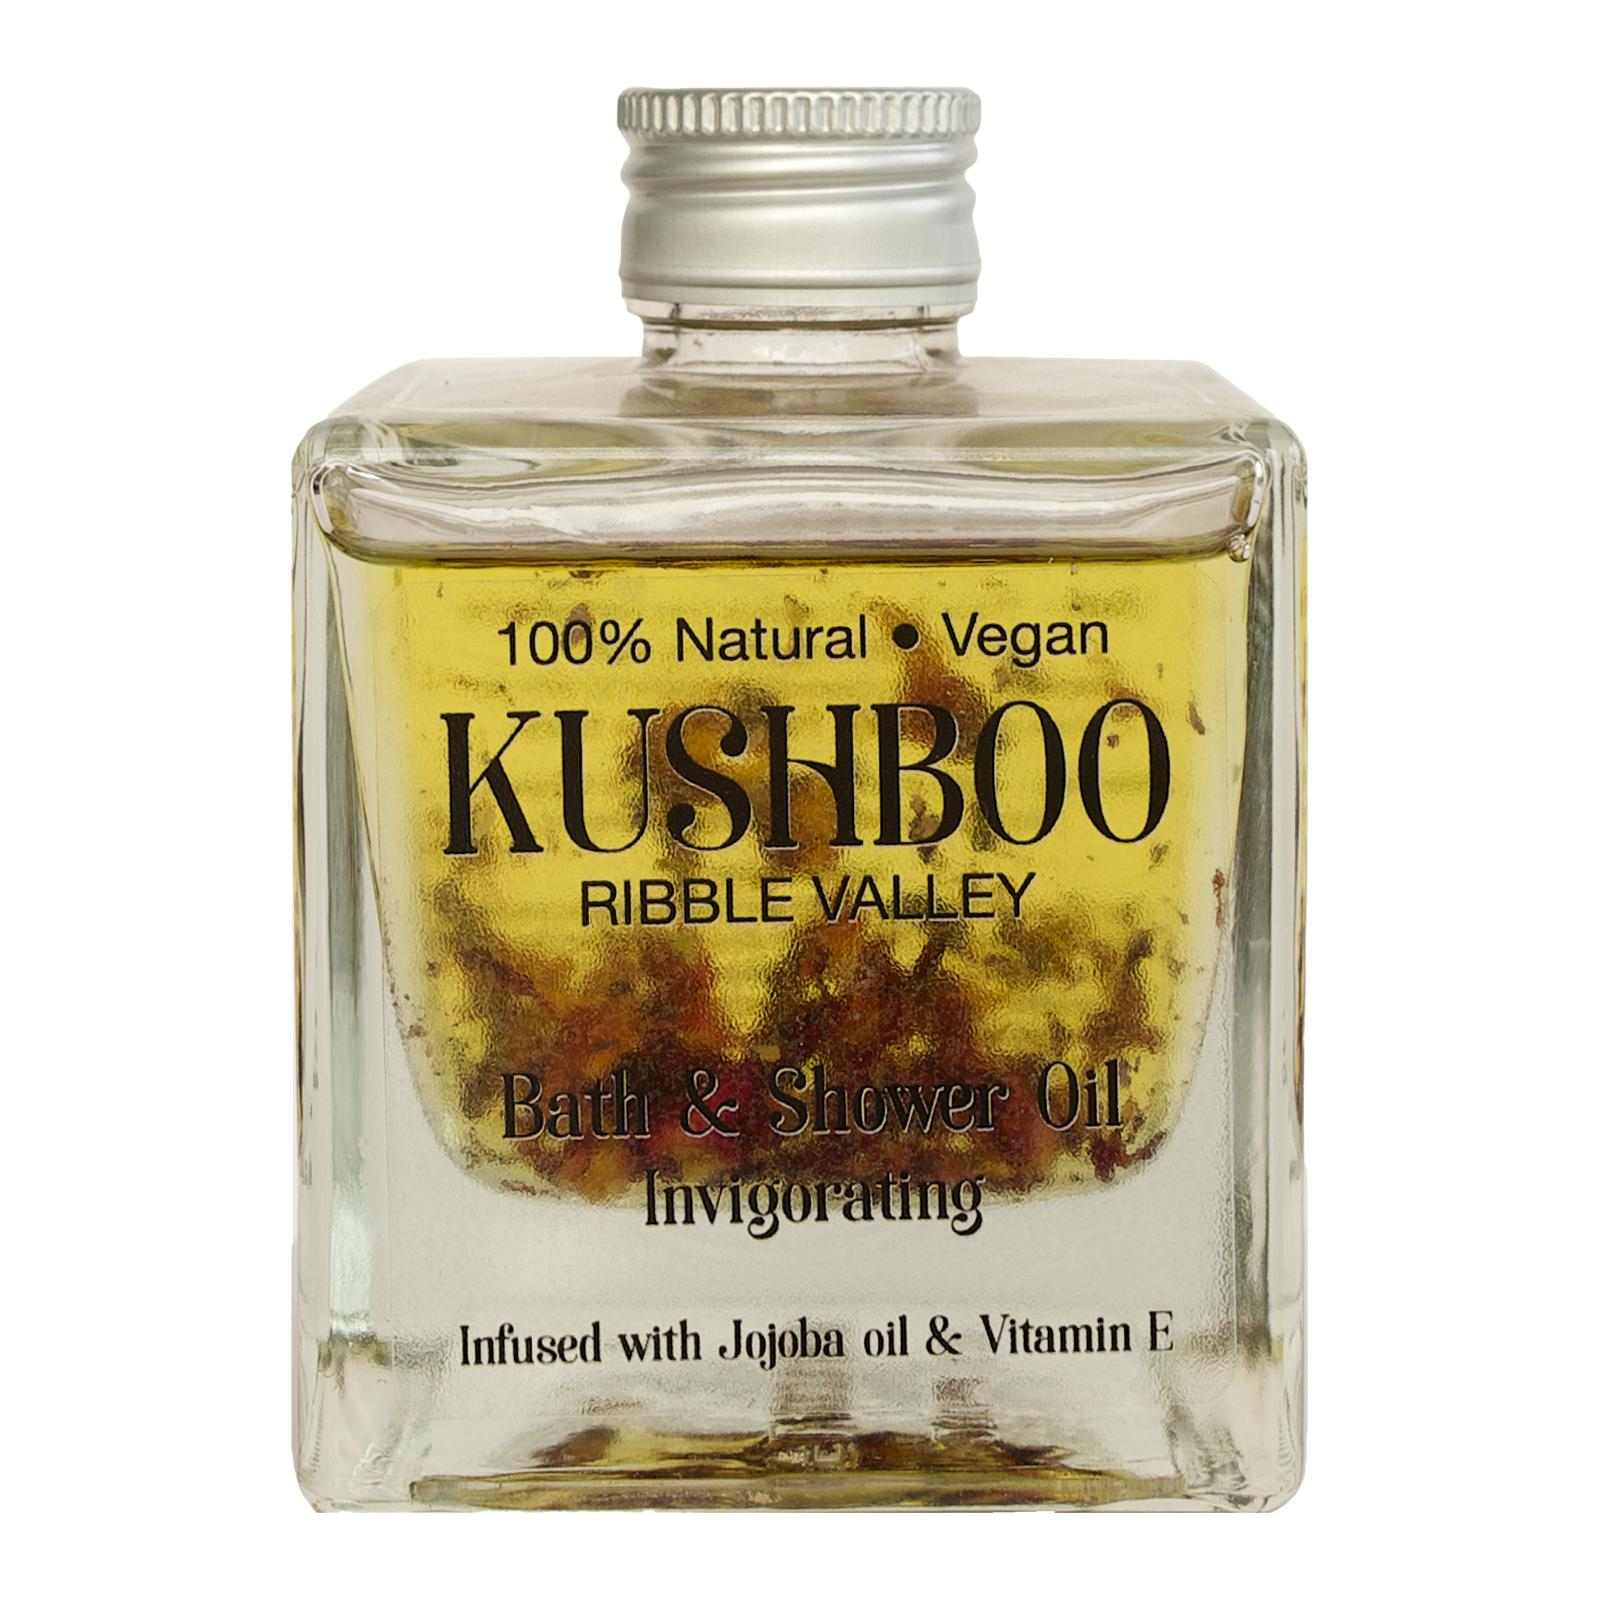 Bath and Shower Oil - Invigorating